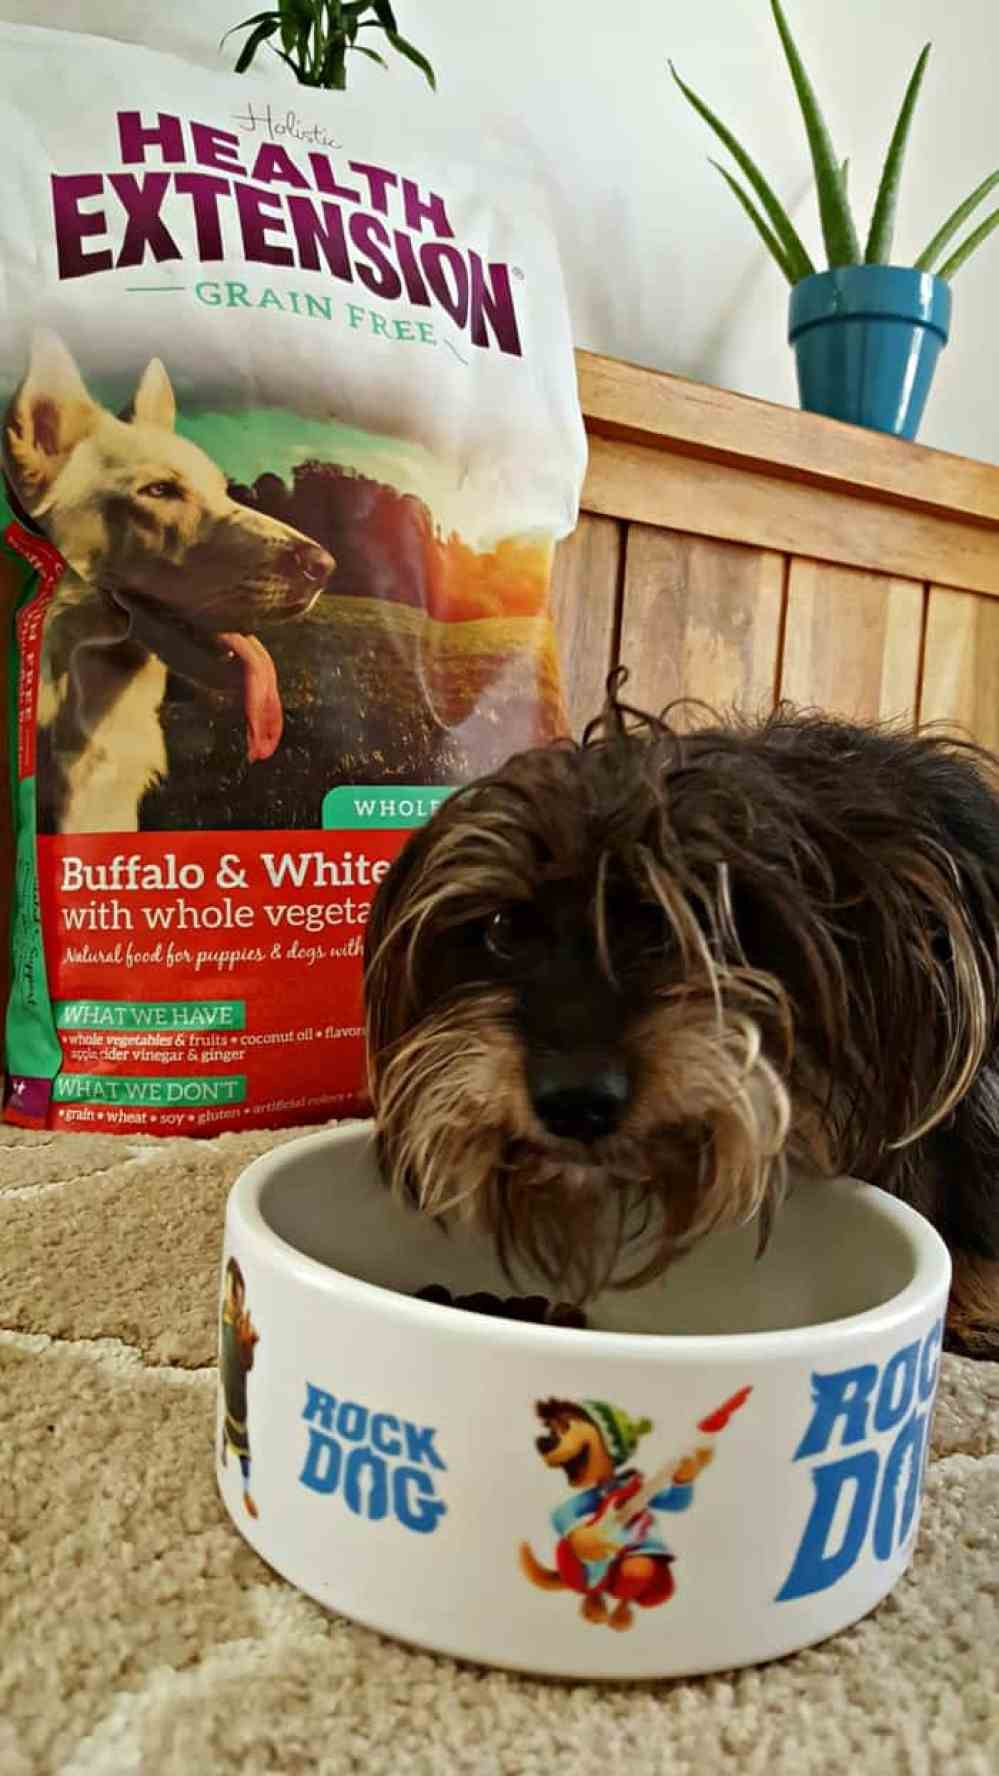 bailey eating holistic health extension grain free